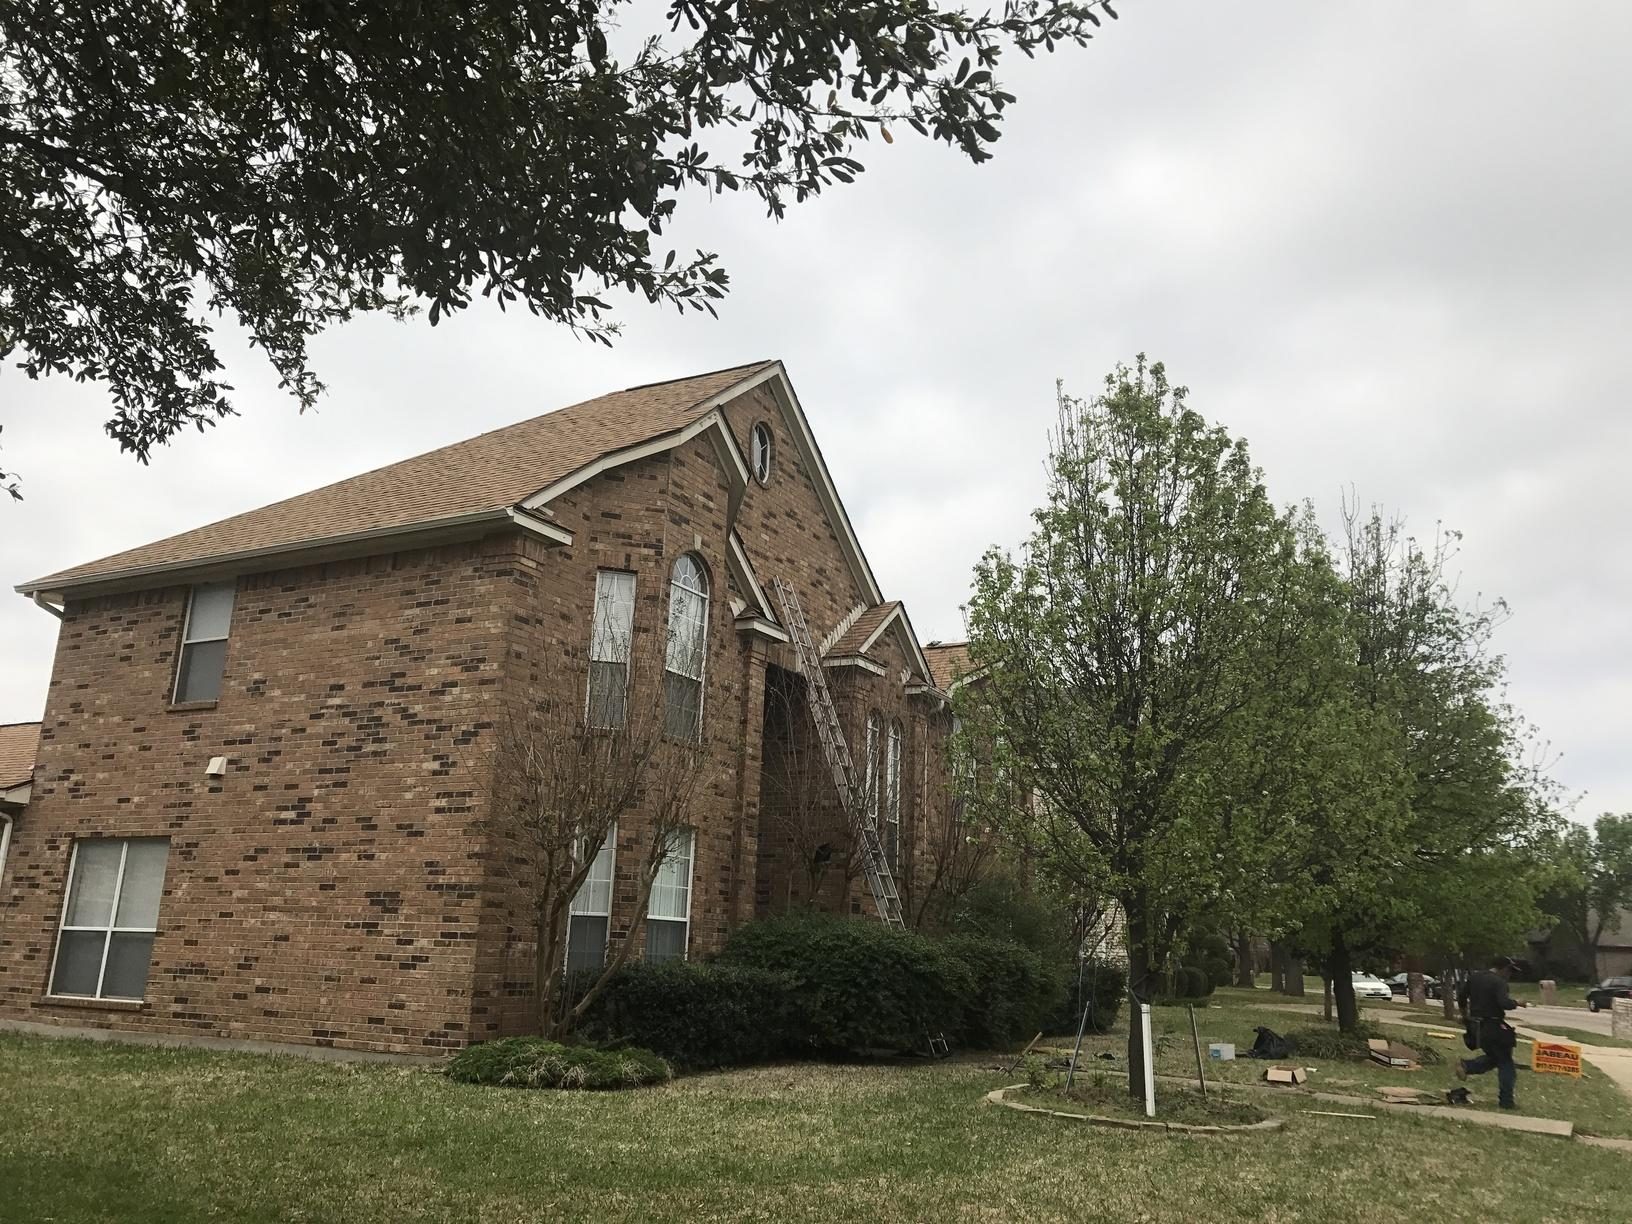 Roofing Replacement in Plano, TX - After Photo